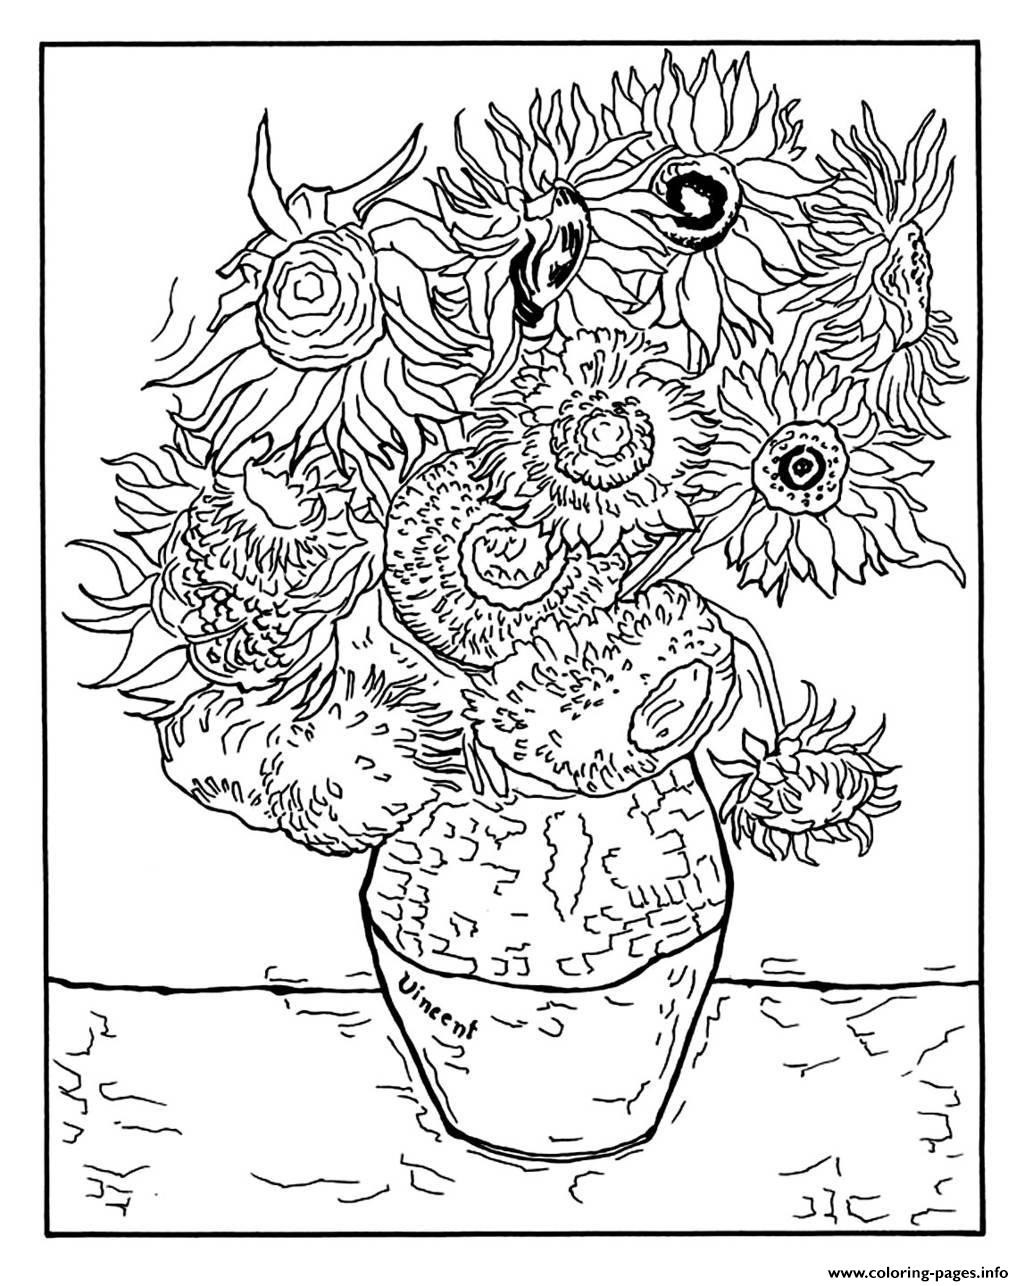 Adult Vincent Van Gogh 12 Tournesols Dans Un Vase coloring pages